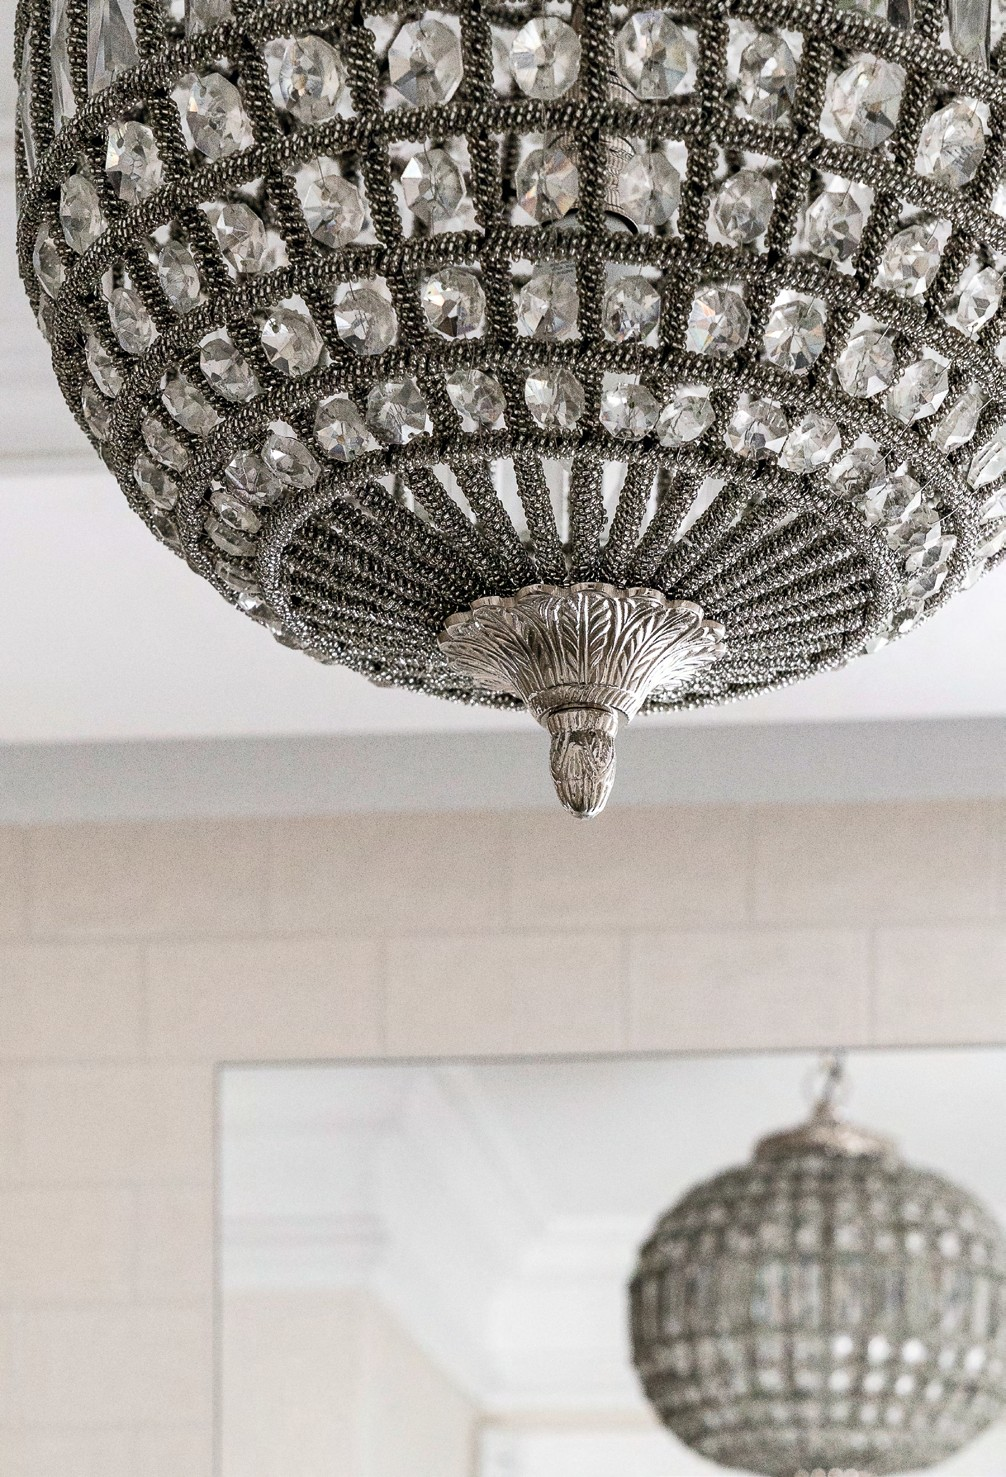 Decorative detailing on the pendant light fixtures lends a touch of opulence.